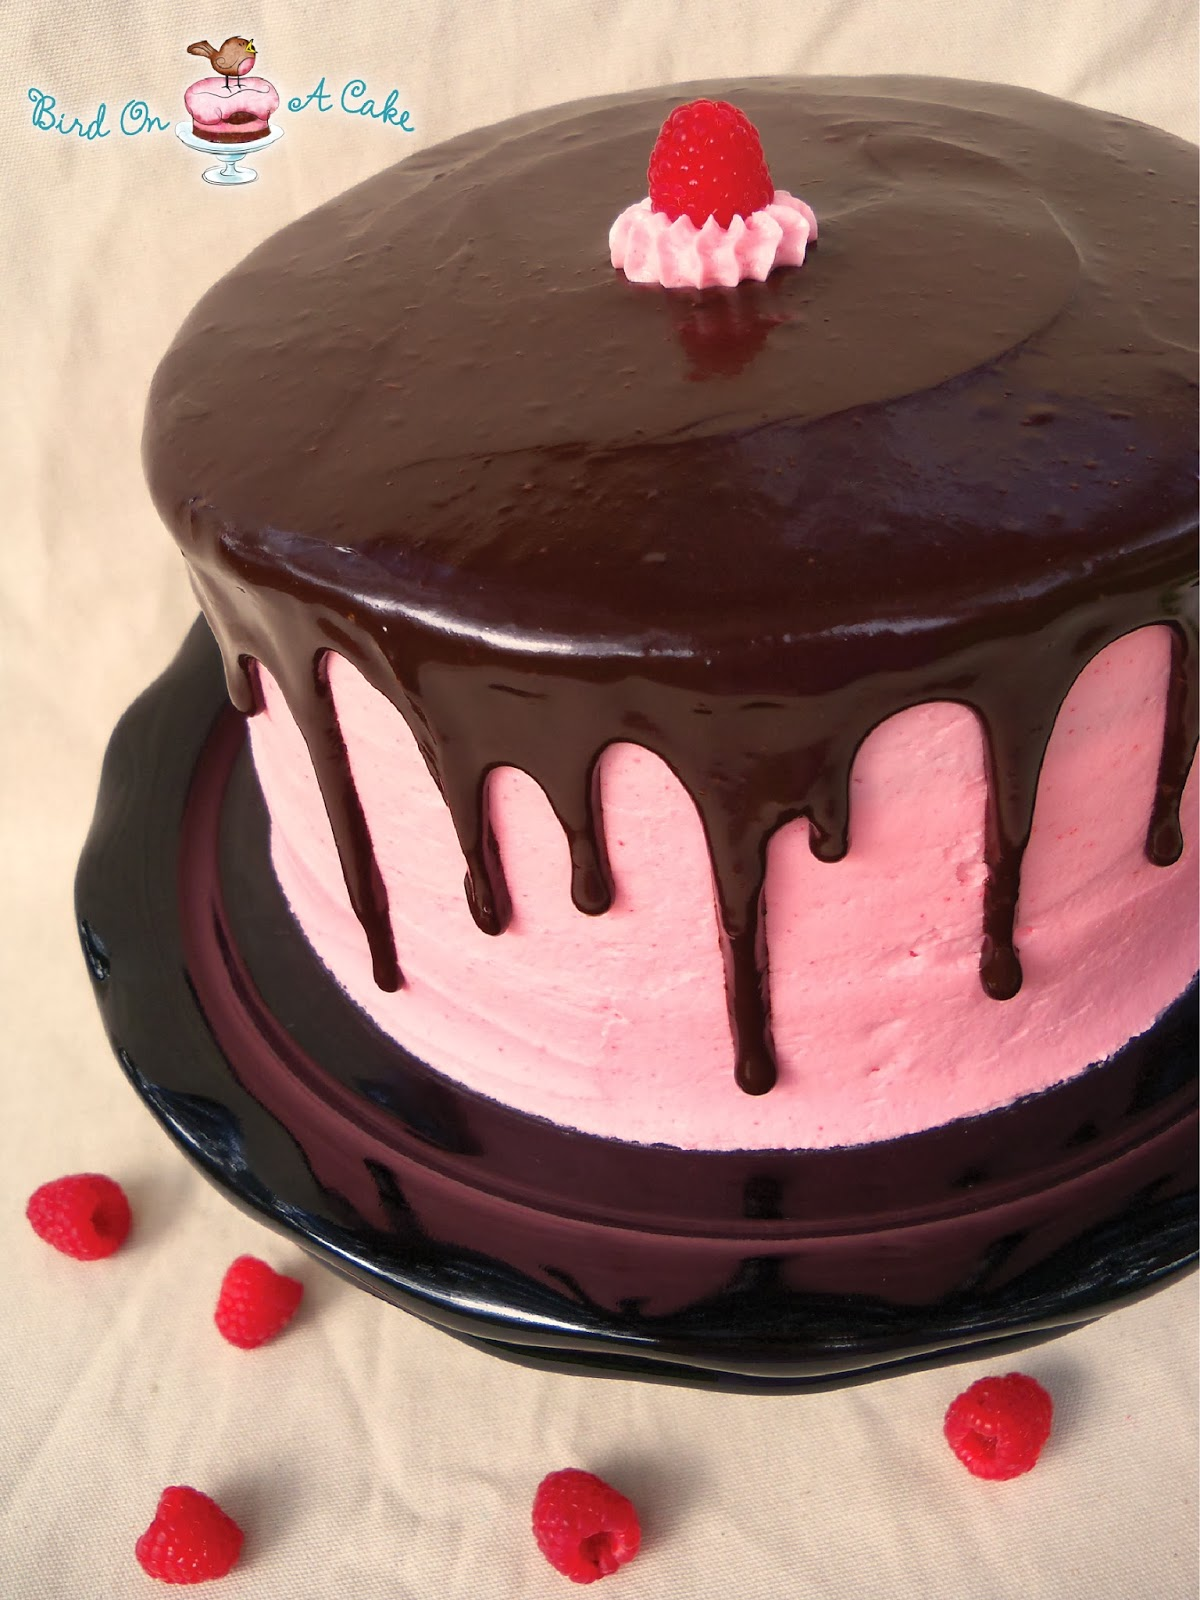 http://birdonacake.blogspot.com/2012/07/raspberry-cake-with-dark-chocolate.html